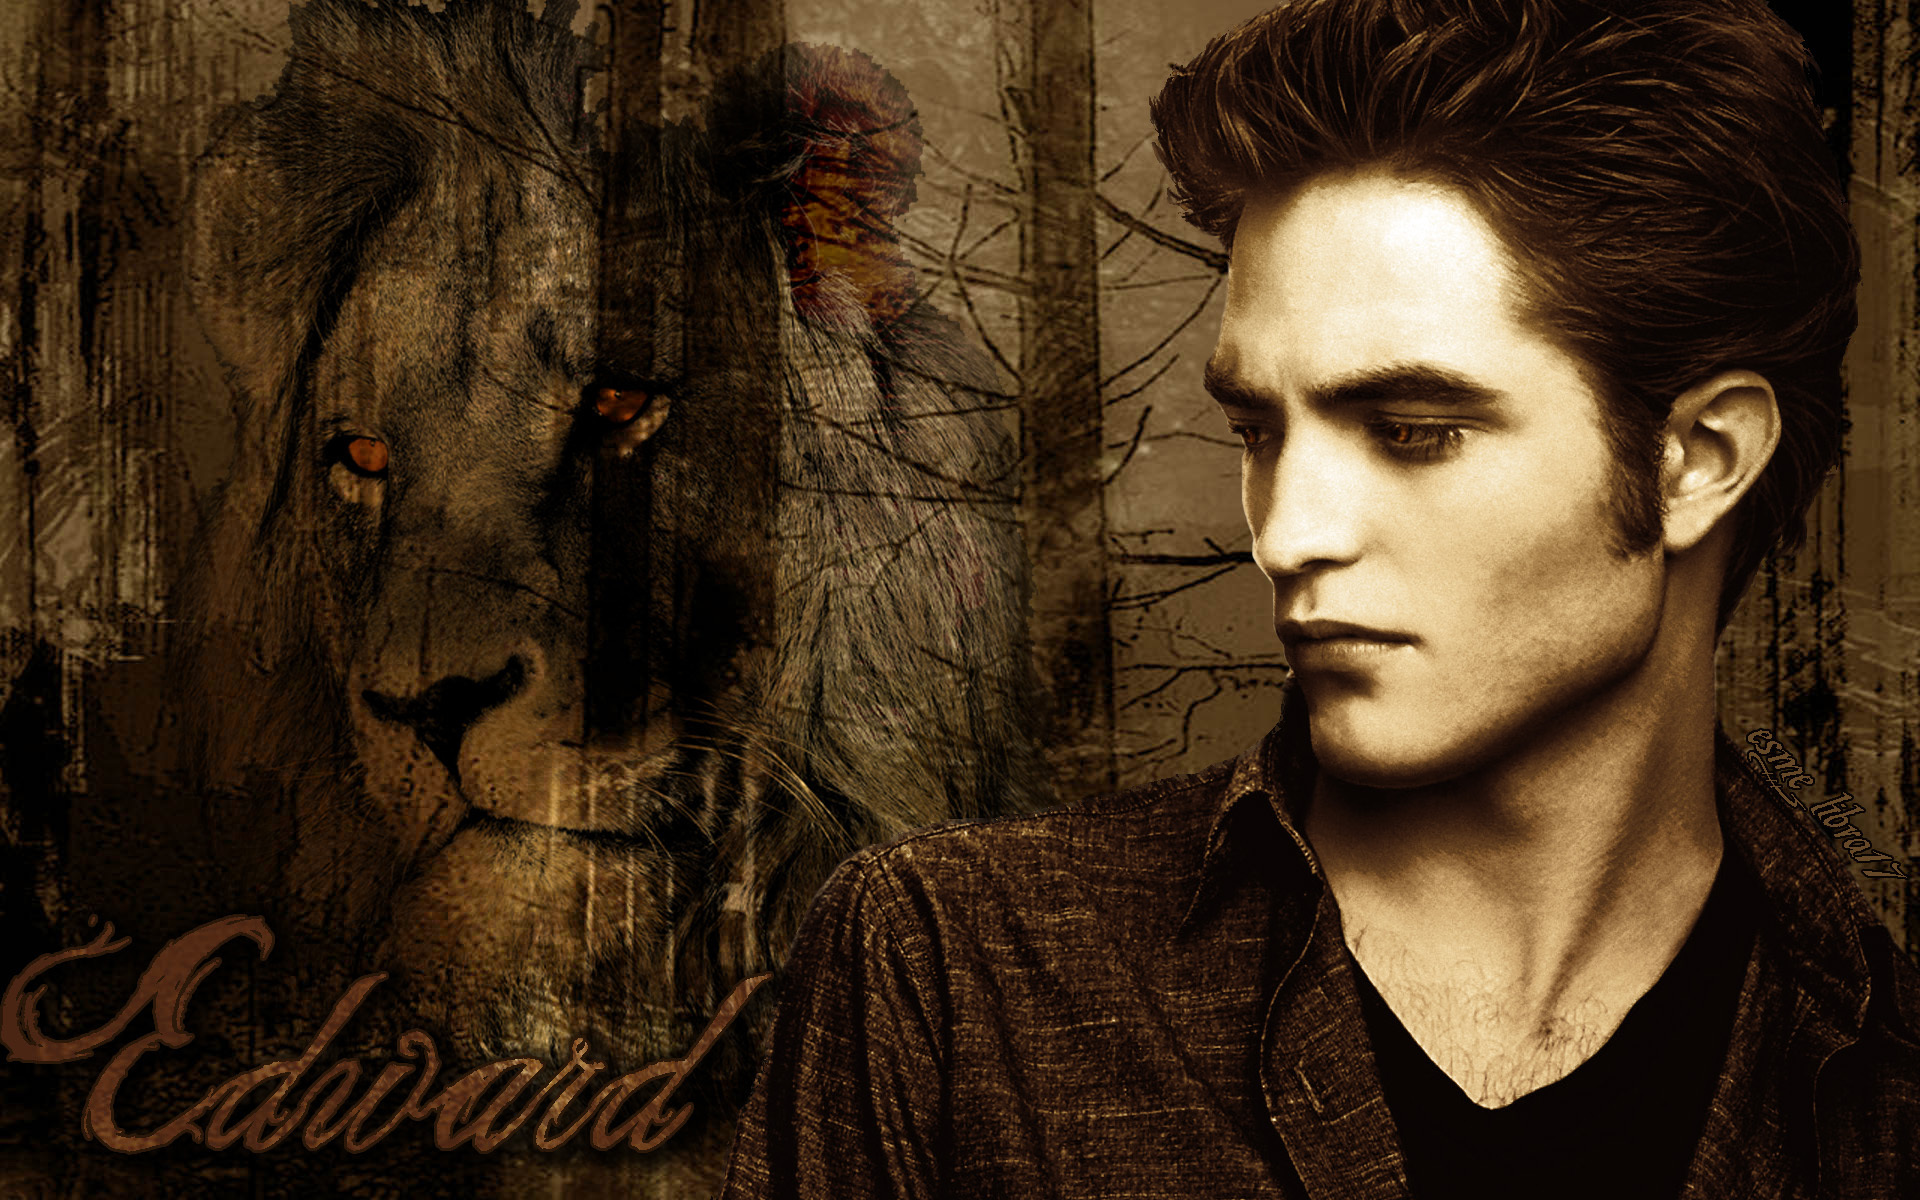 Pin edward crepusculo on pinterest for Twilight edward photos